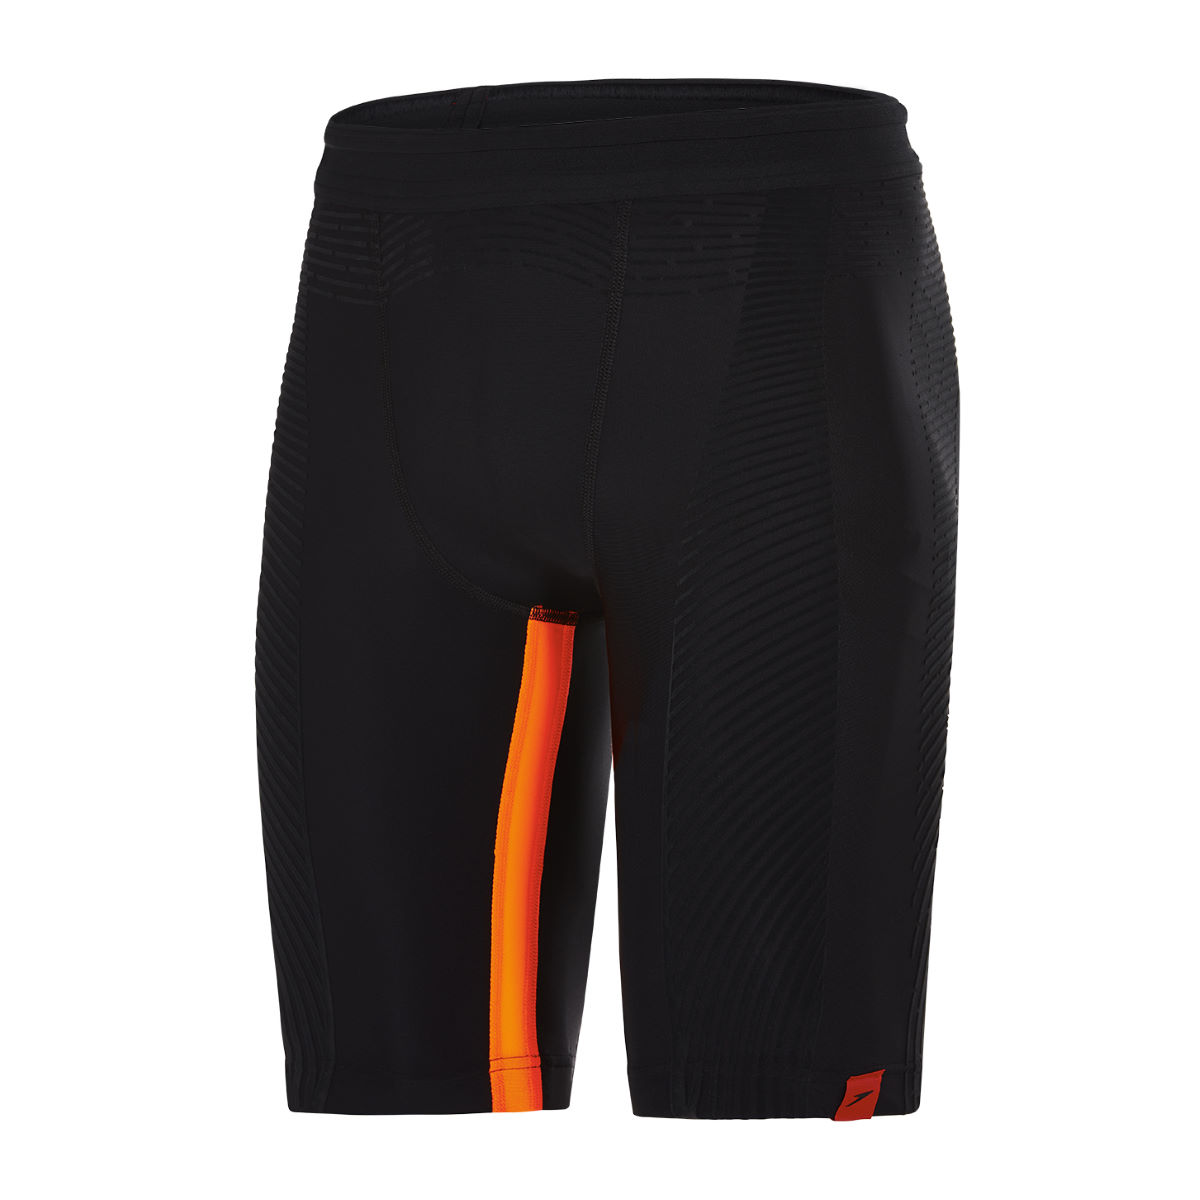 Jammer Speedo Fit PowerForm Pro - 32 Black/Fluo Orange